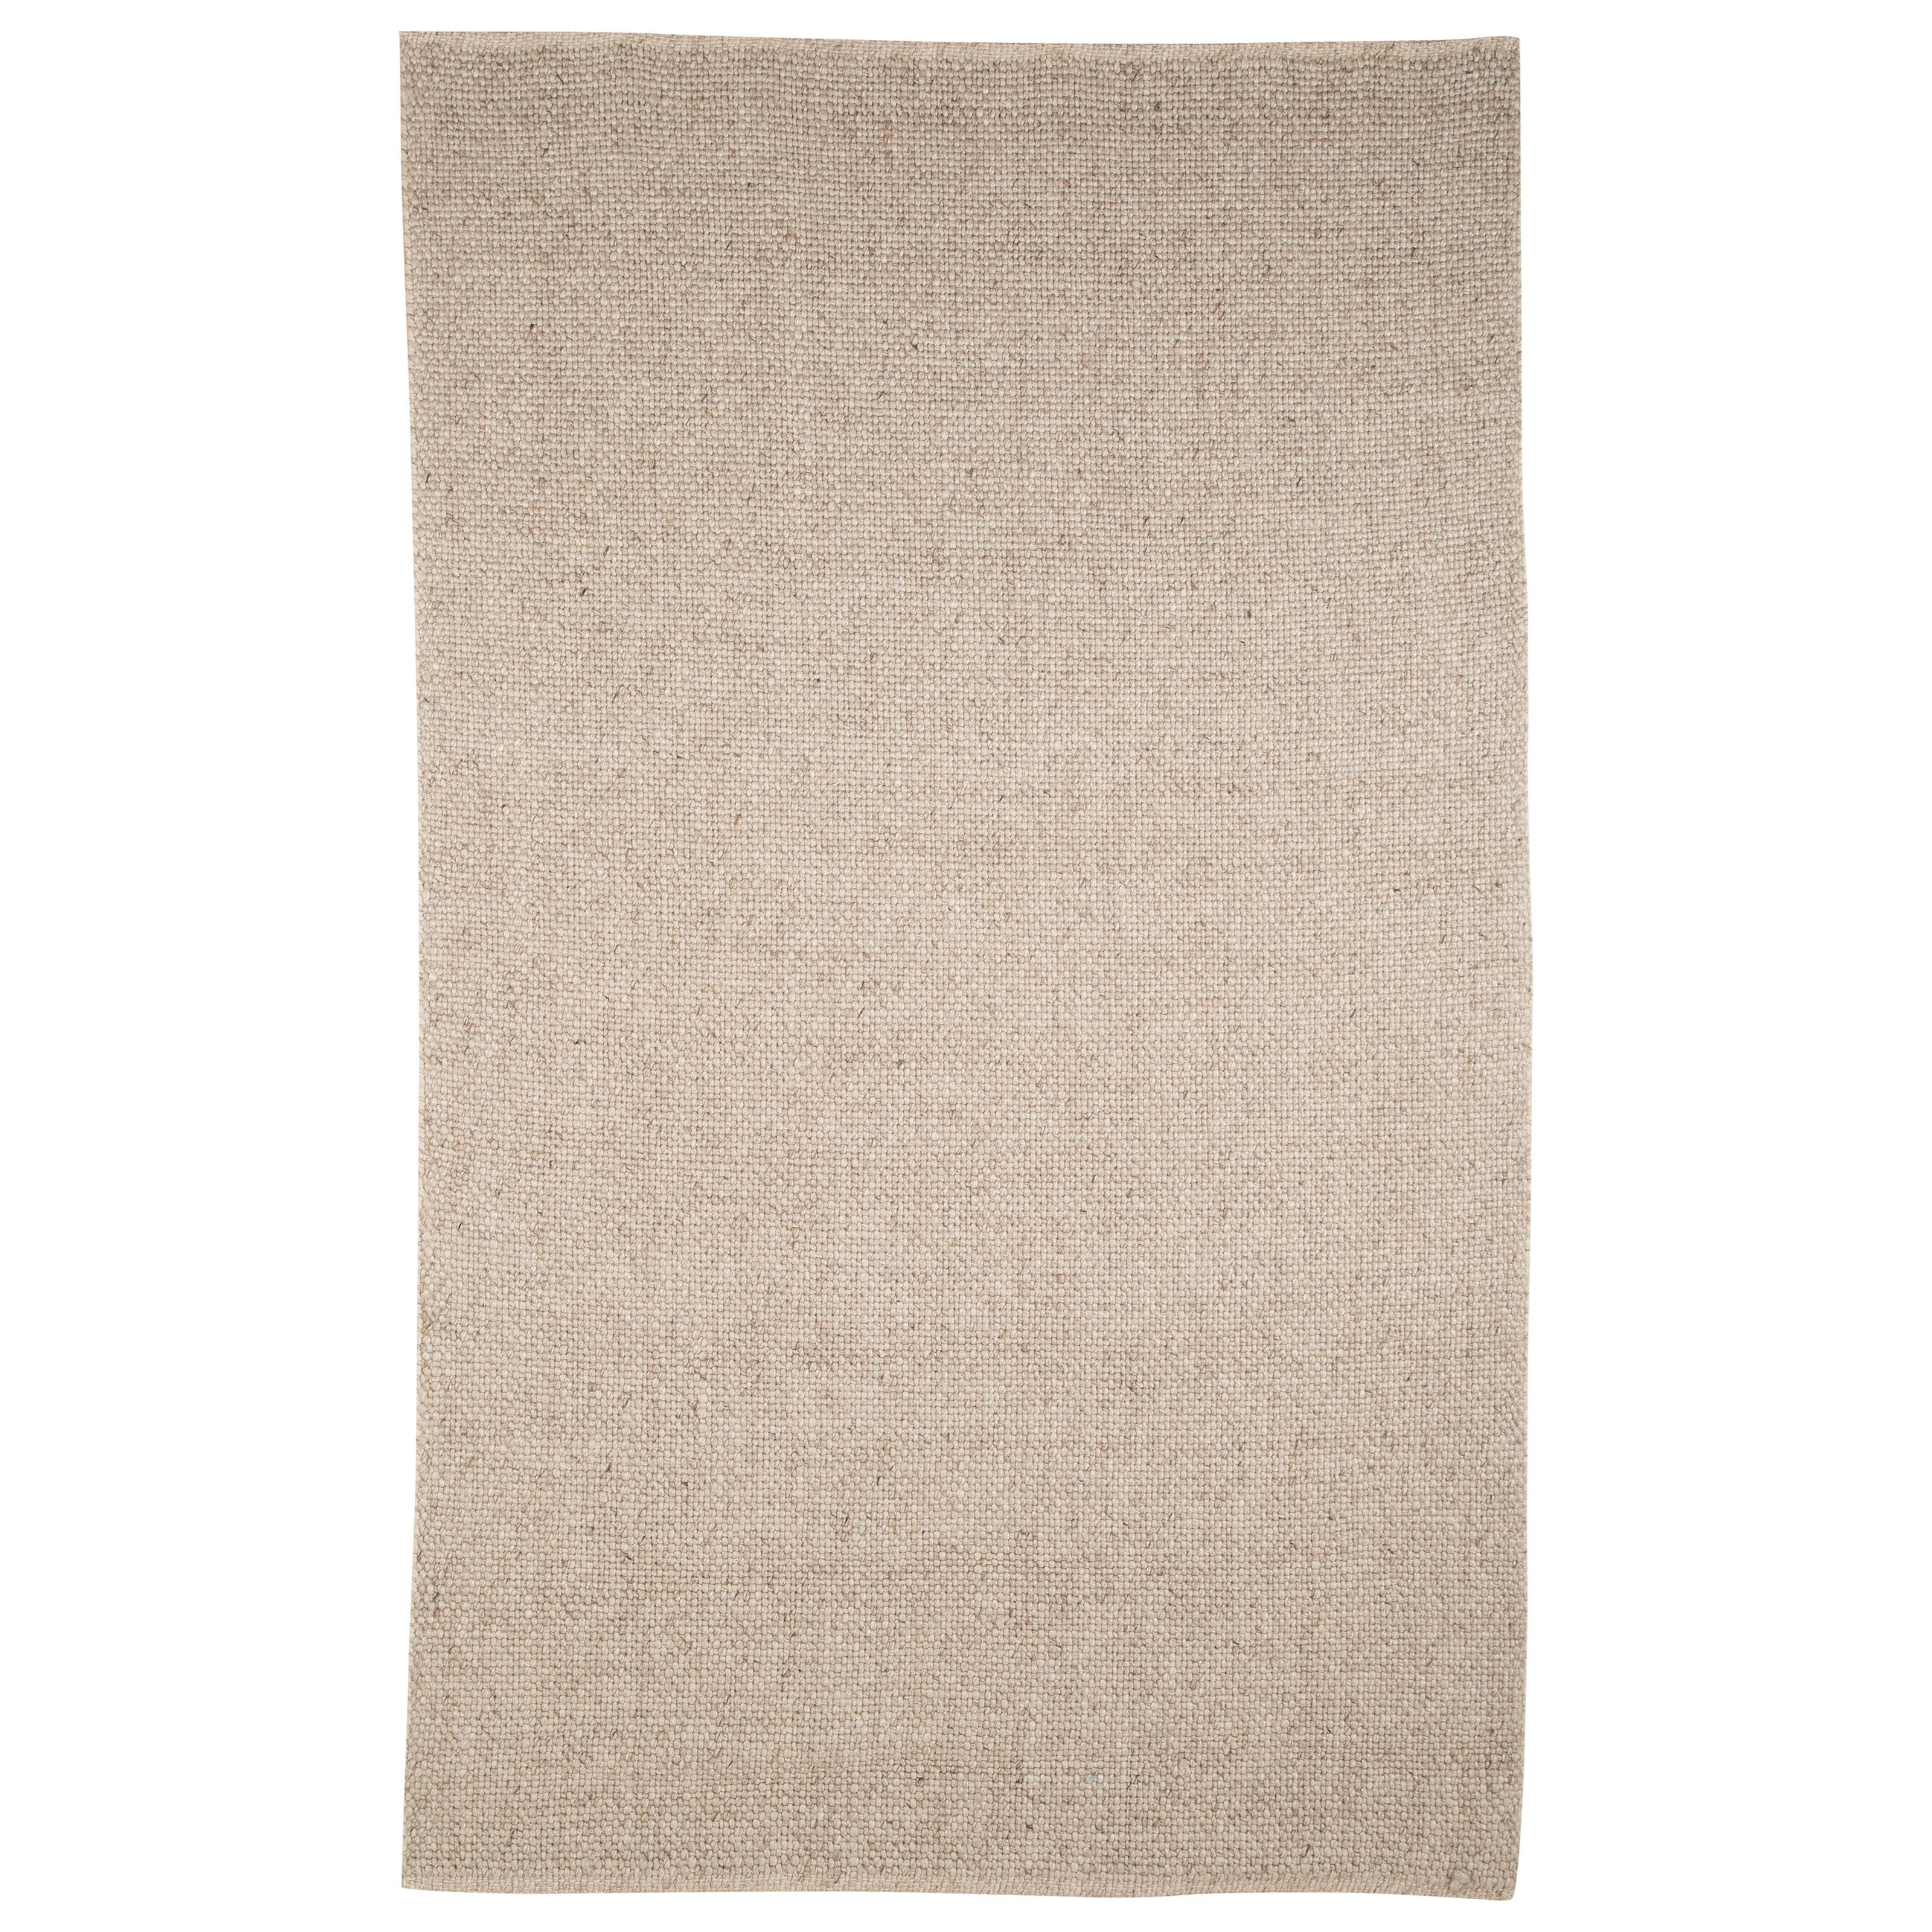 Signature Design by Ashley Casual Area Rugs Conly Brown Large Rug - Item Number: R400331